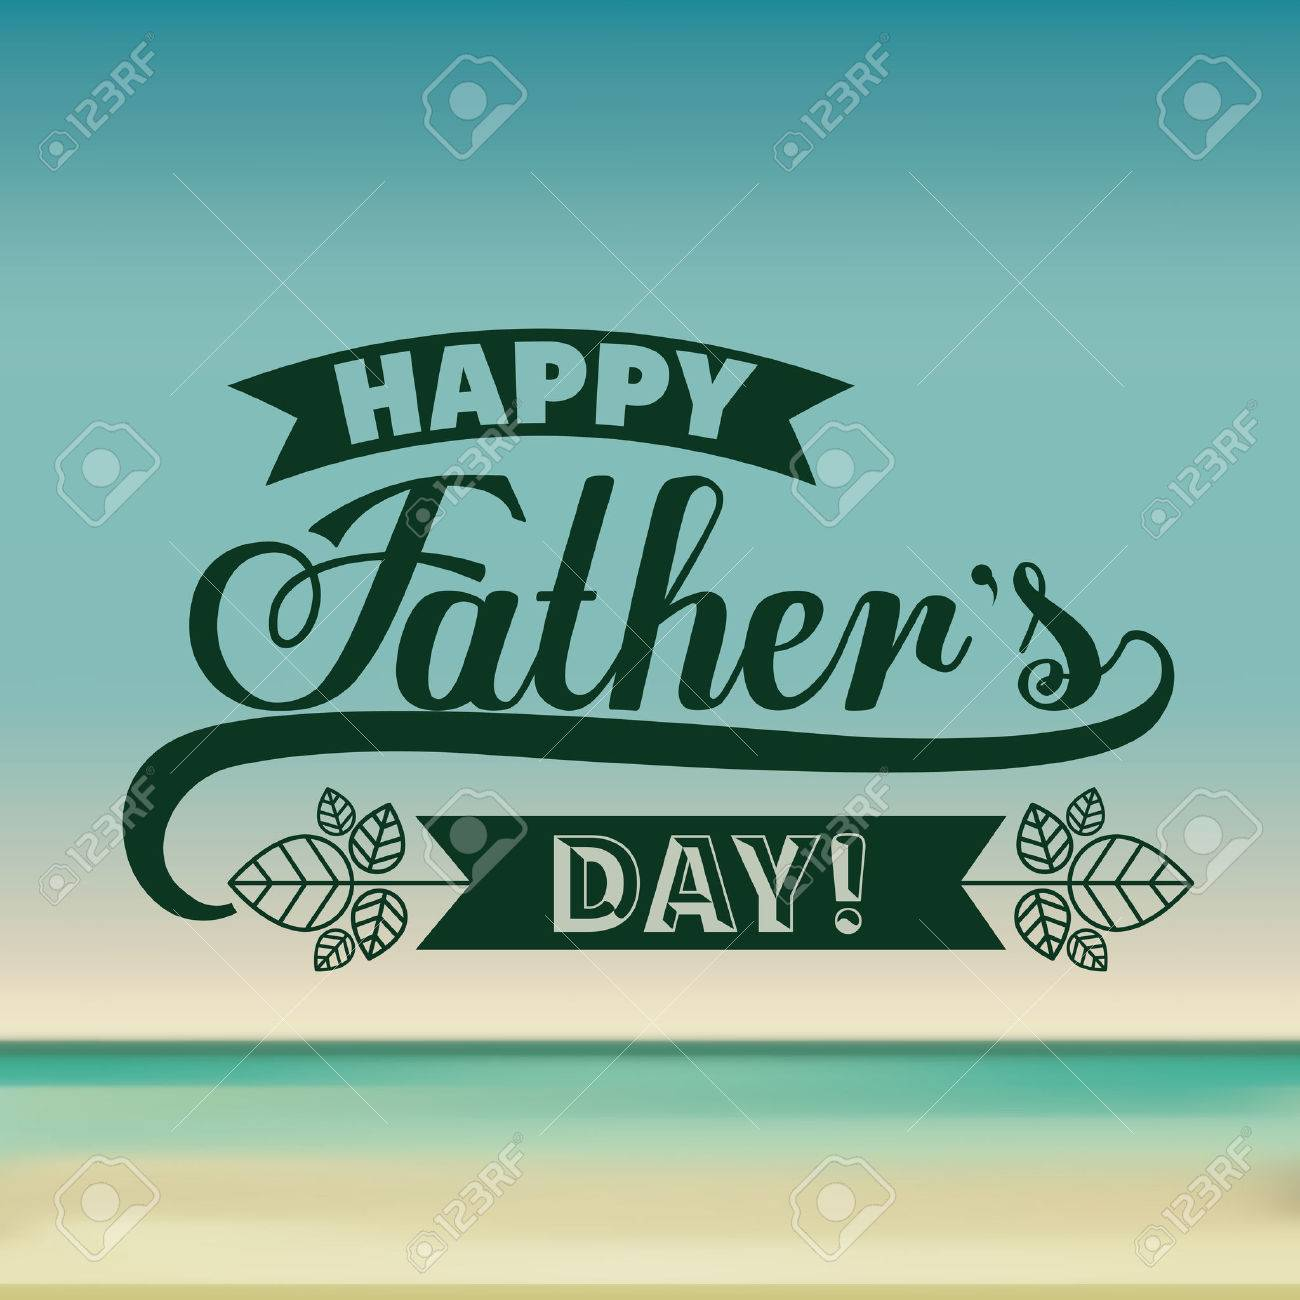 fathers day design over colored background, vector illustration - 38704594